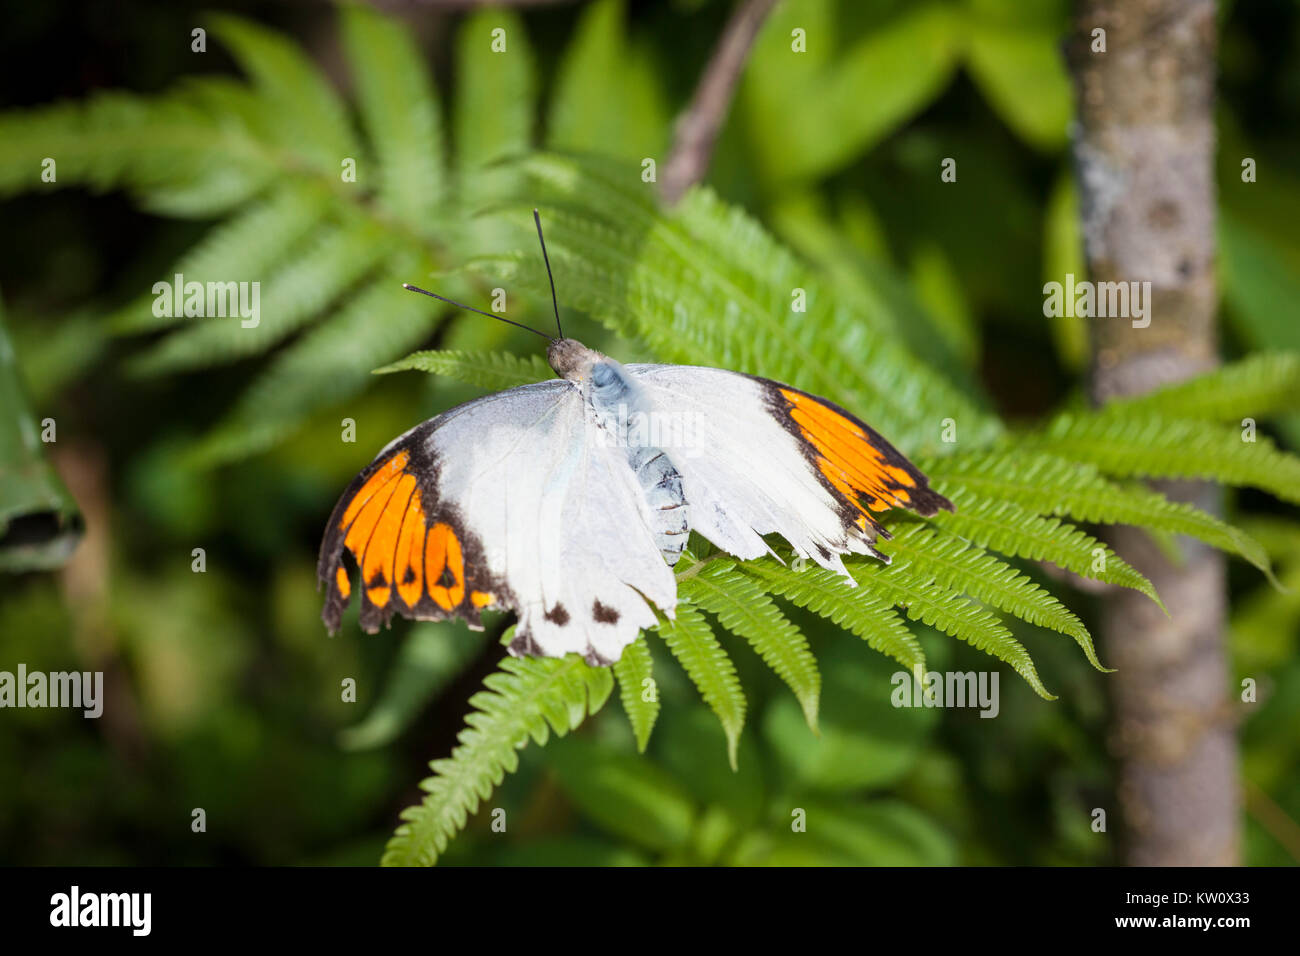 Great Orange Tip Butterfly, Hebomoia glaucippe, sits on a fern plant in Ishigaki, Okinawa Prefecture, Japan. - Stock Image